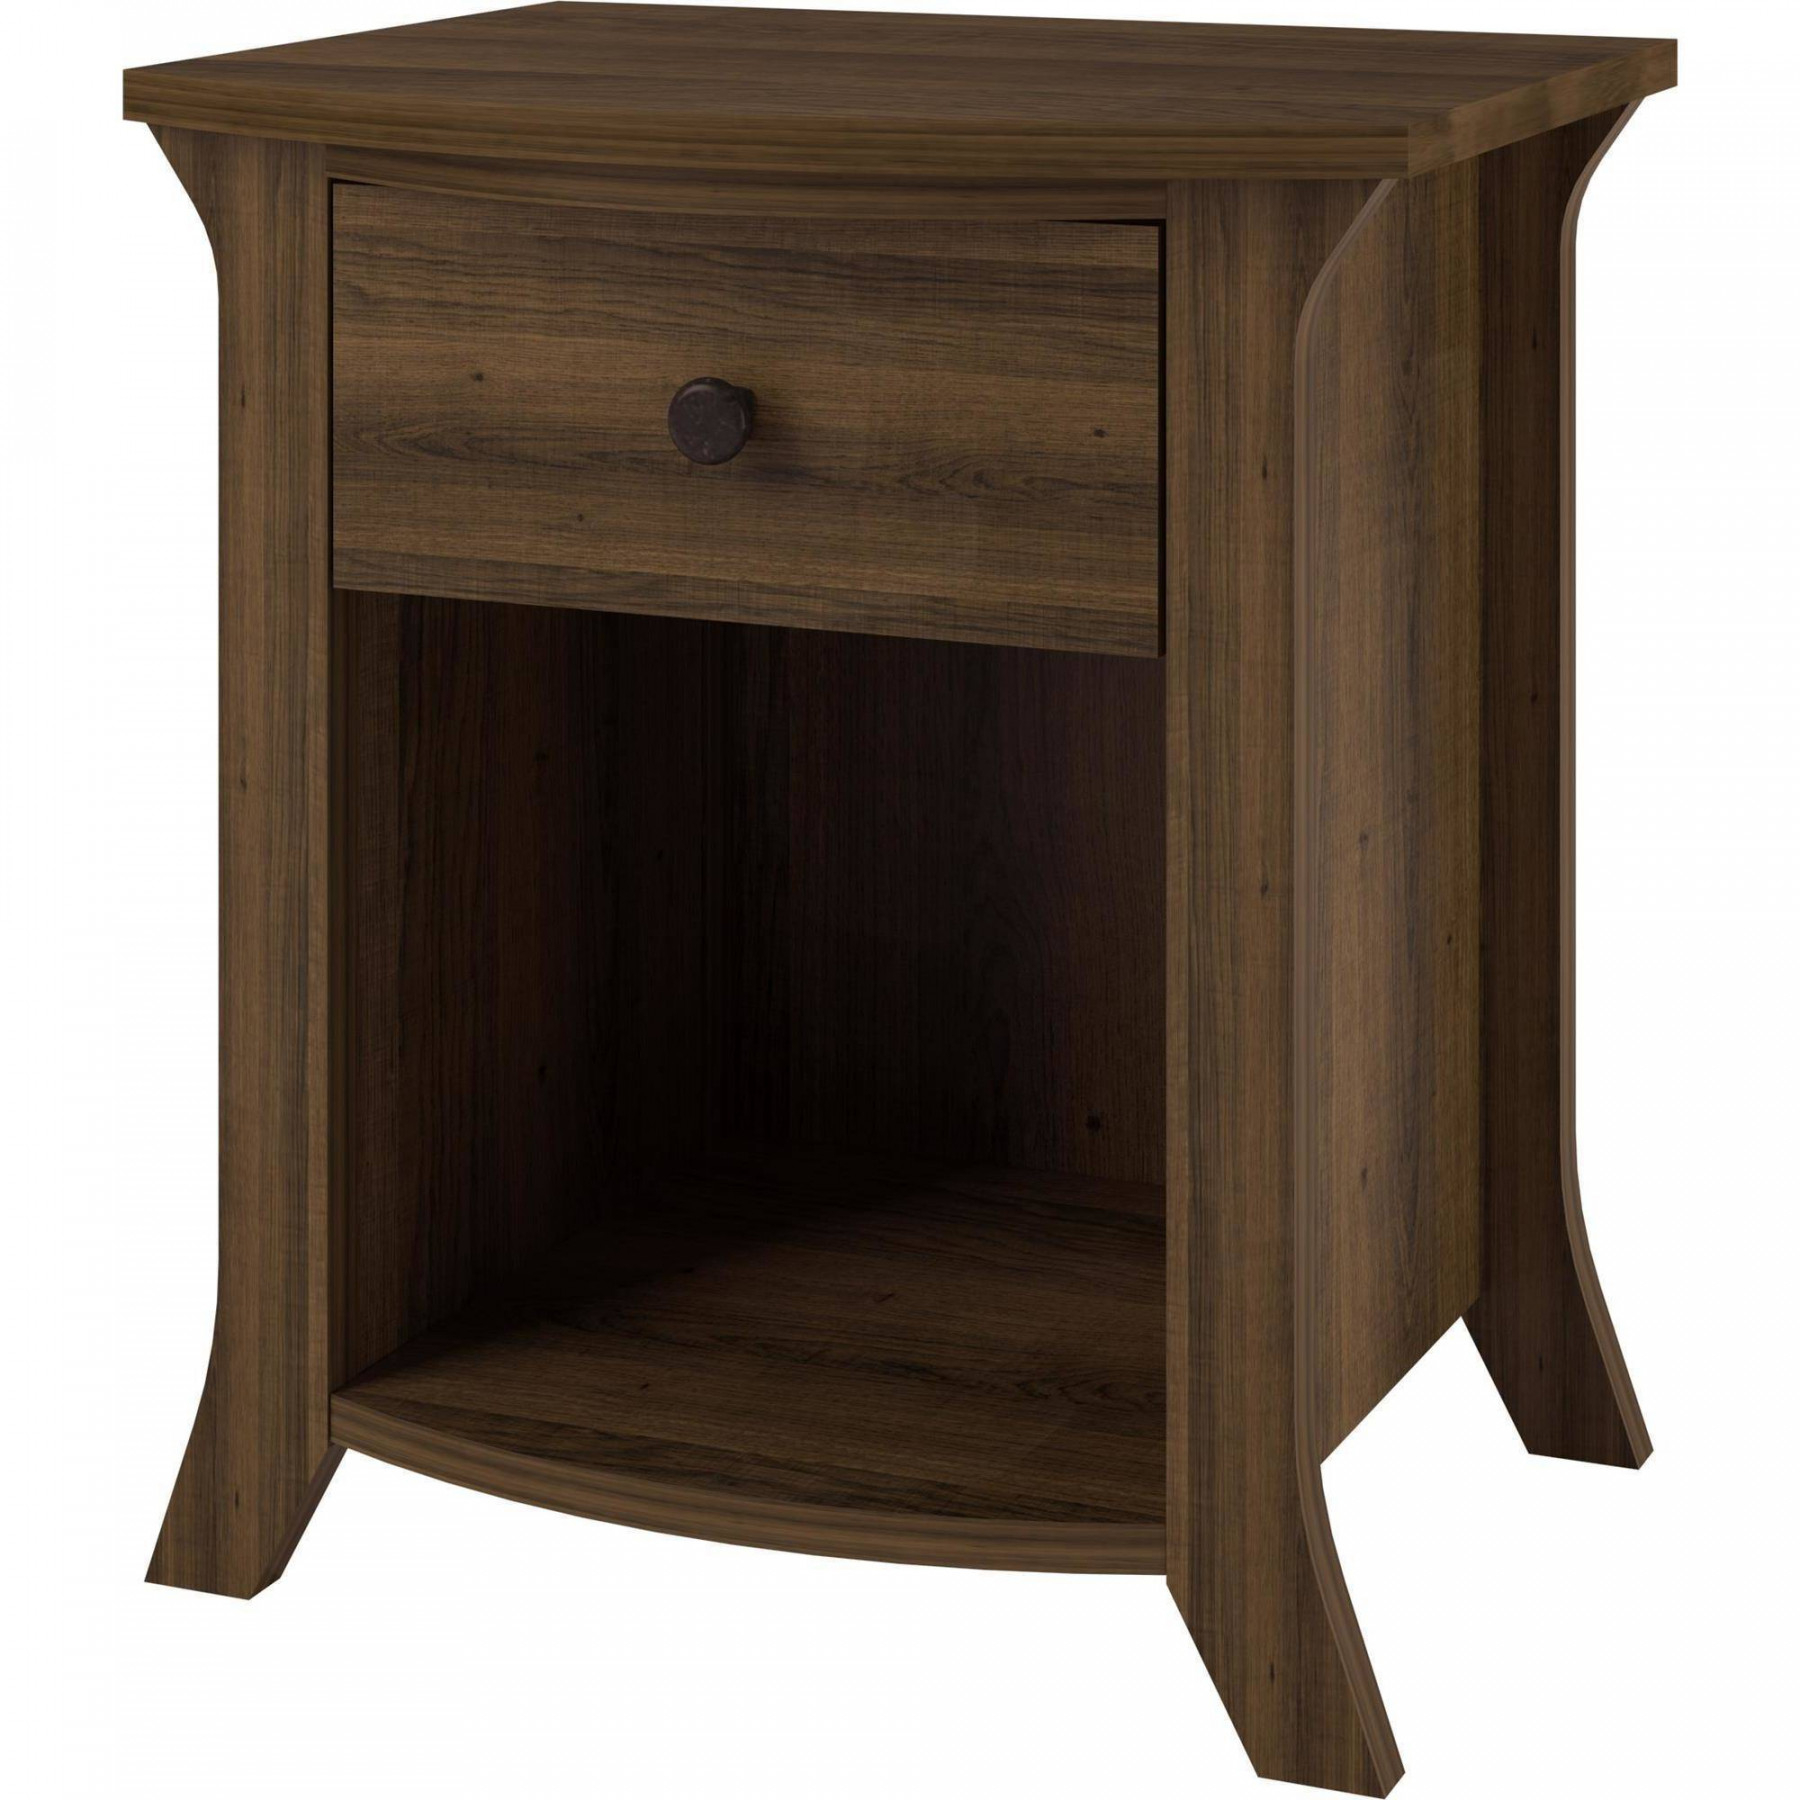 curved nightstand end table home design and decorating ideas incredible charming interior winsome wood night stand with drawer shelf stressless recliners black metal glass coffee